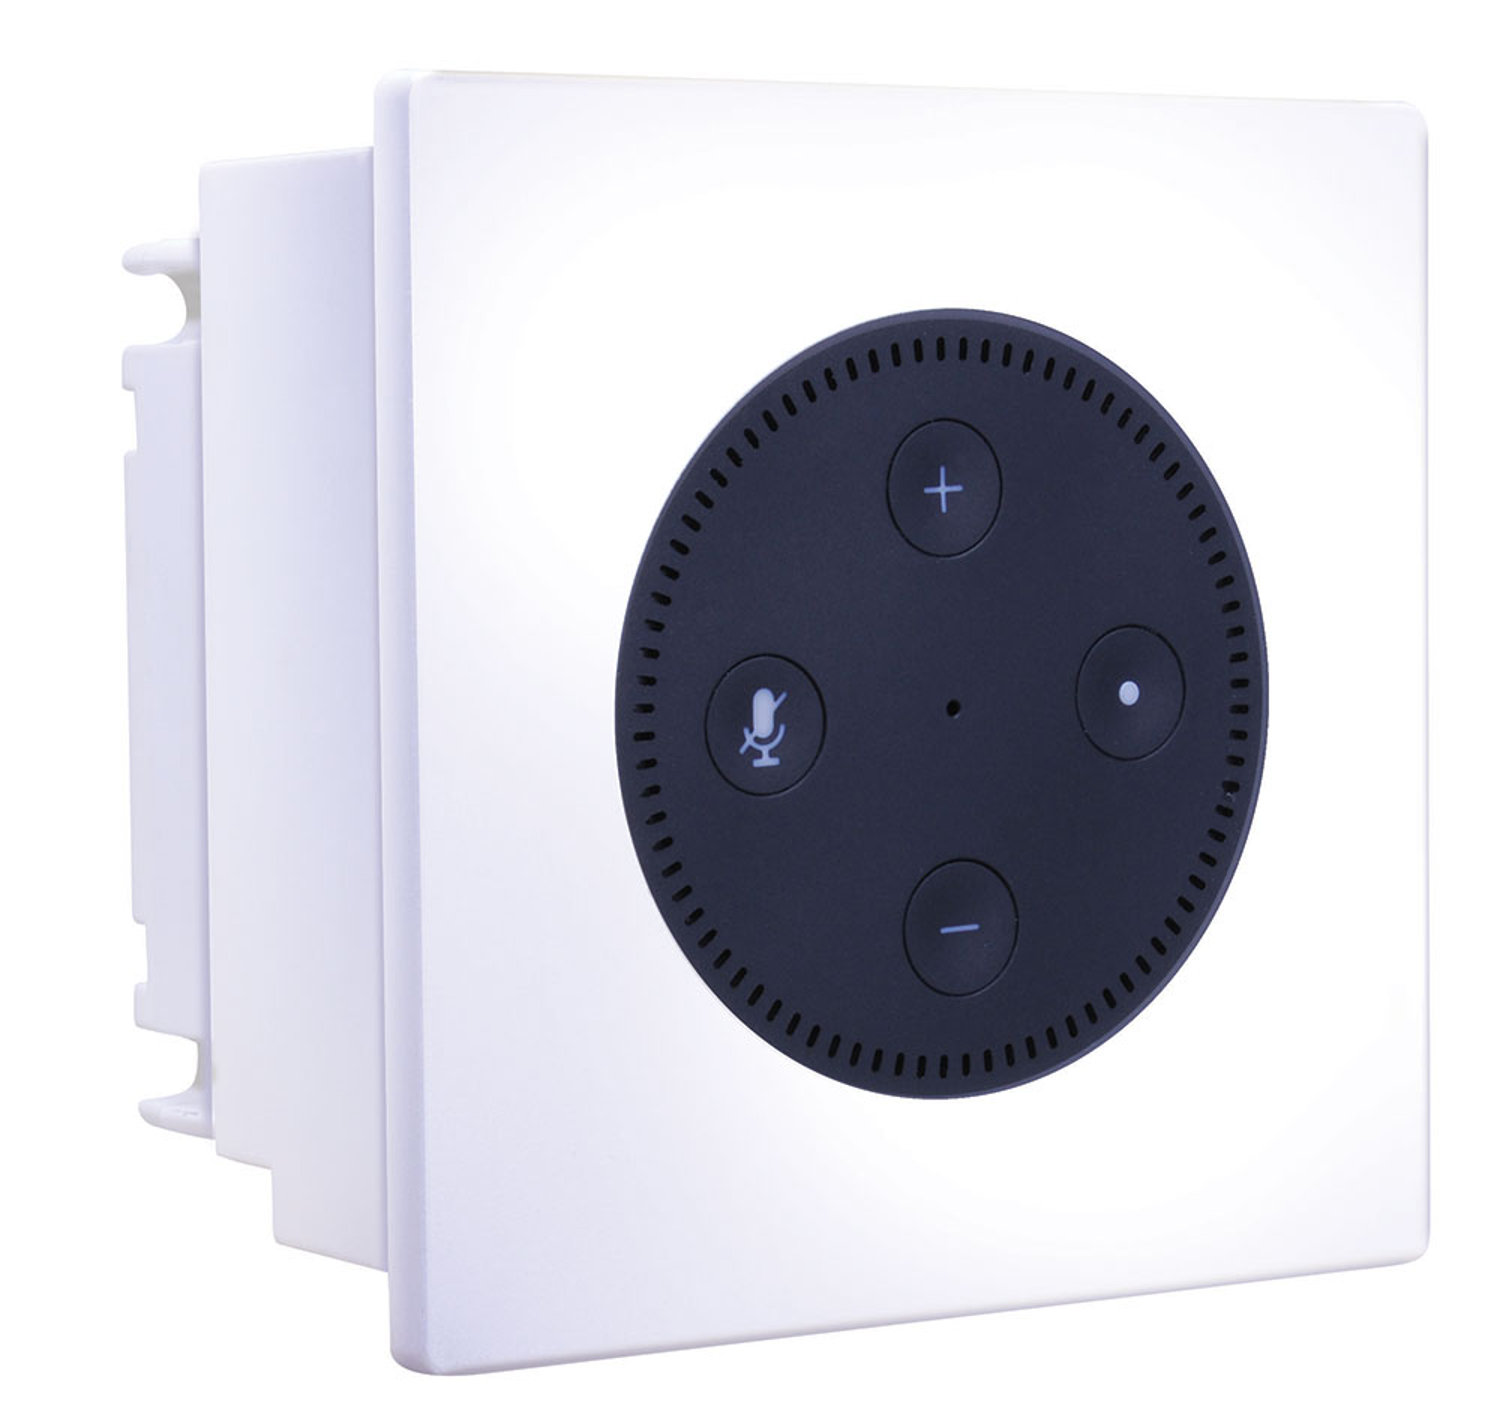 Amazon Echo Dot And In Wall Amplifier Combine To Power Speakers House Wiring Stereo Systems Voice Control Electronic